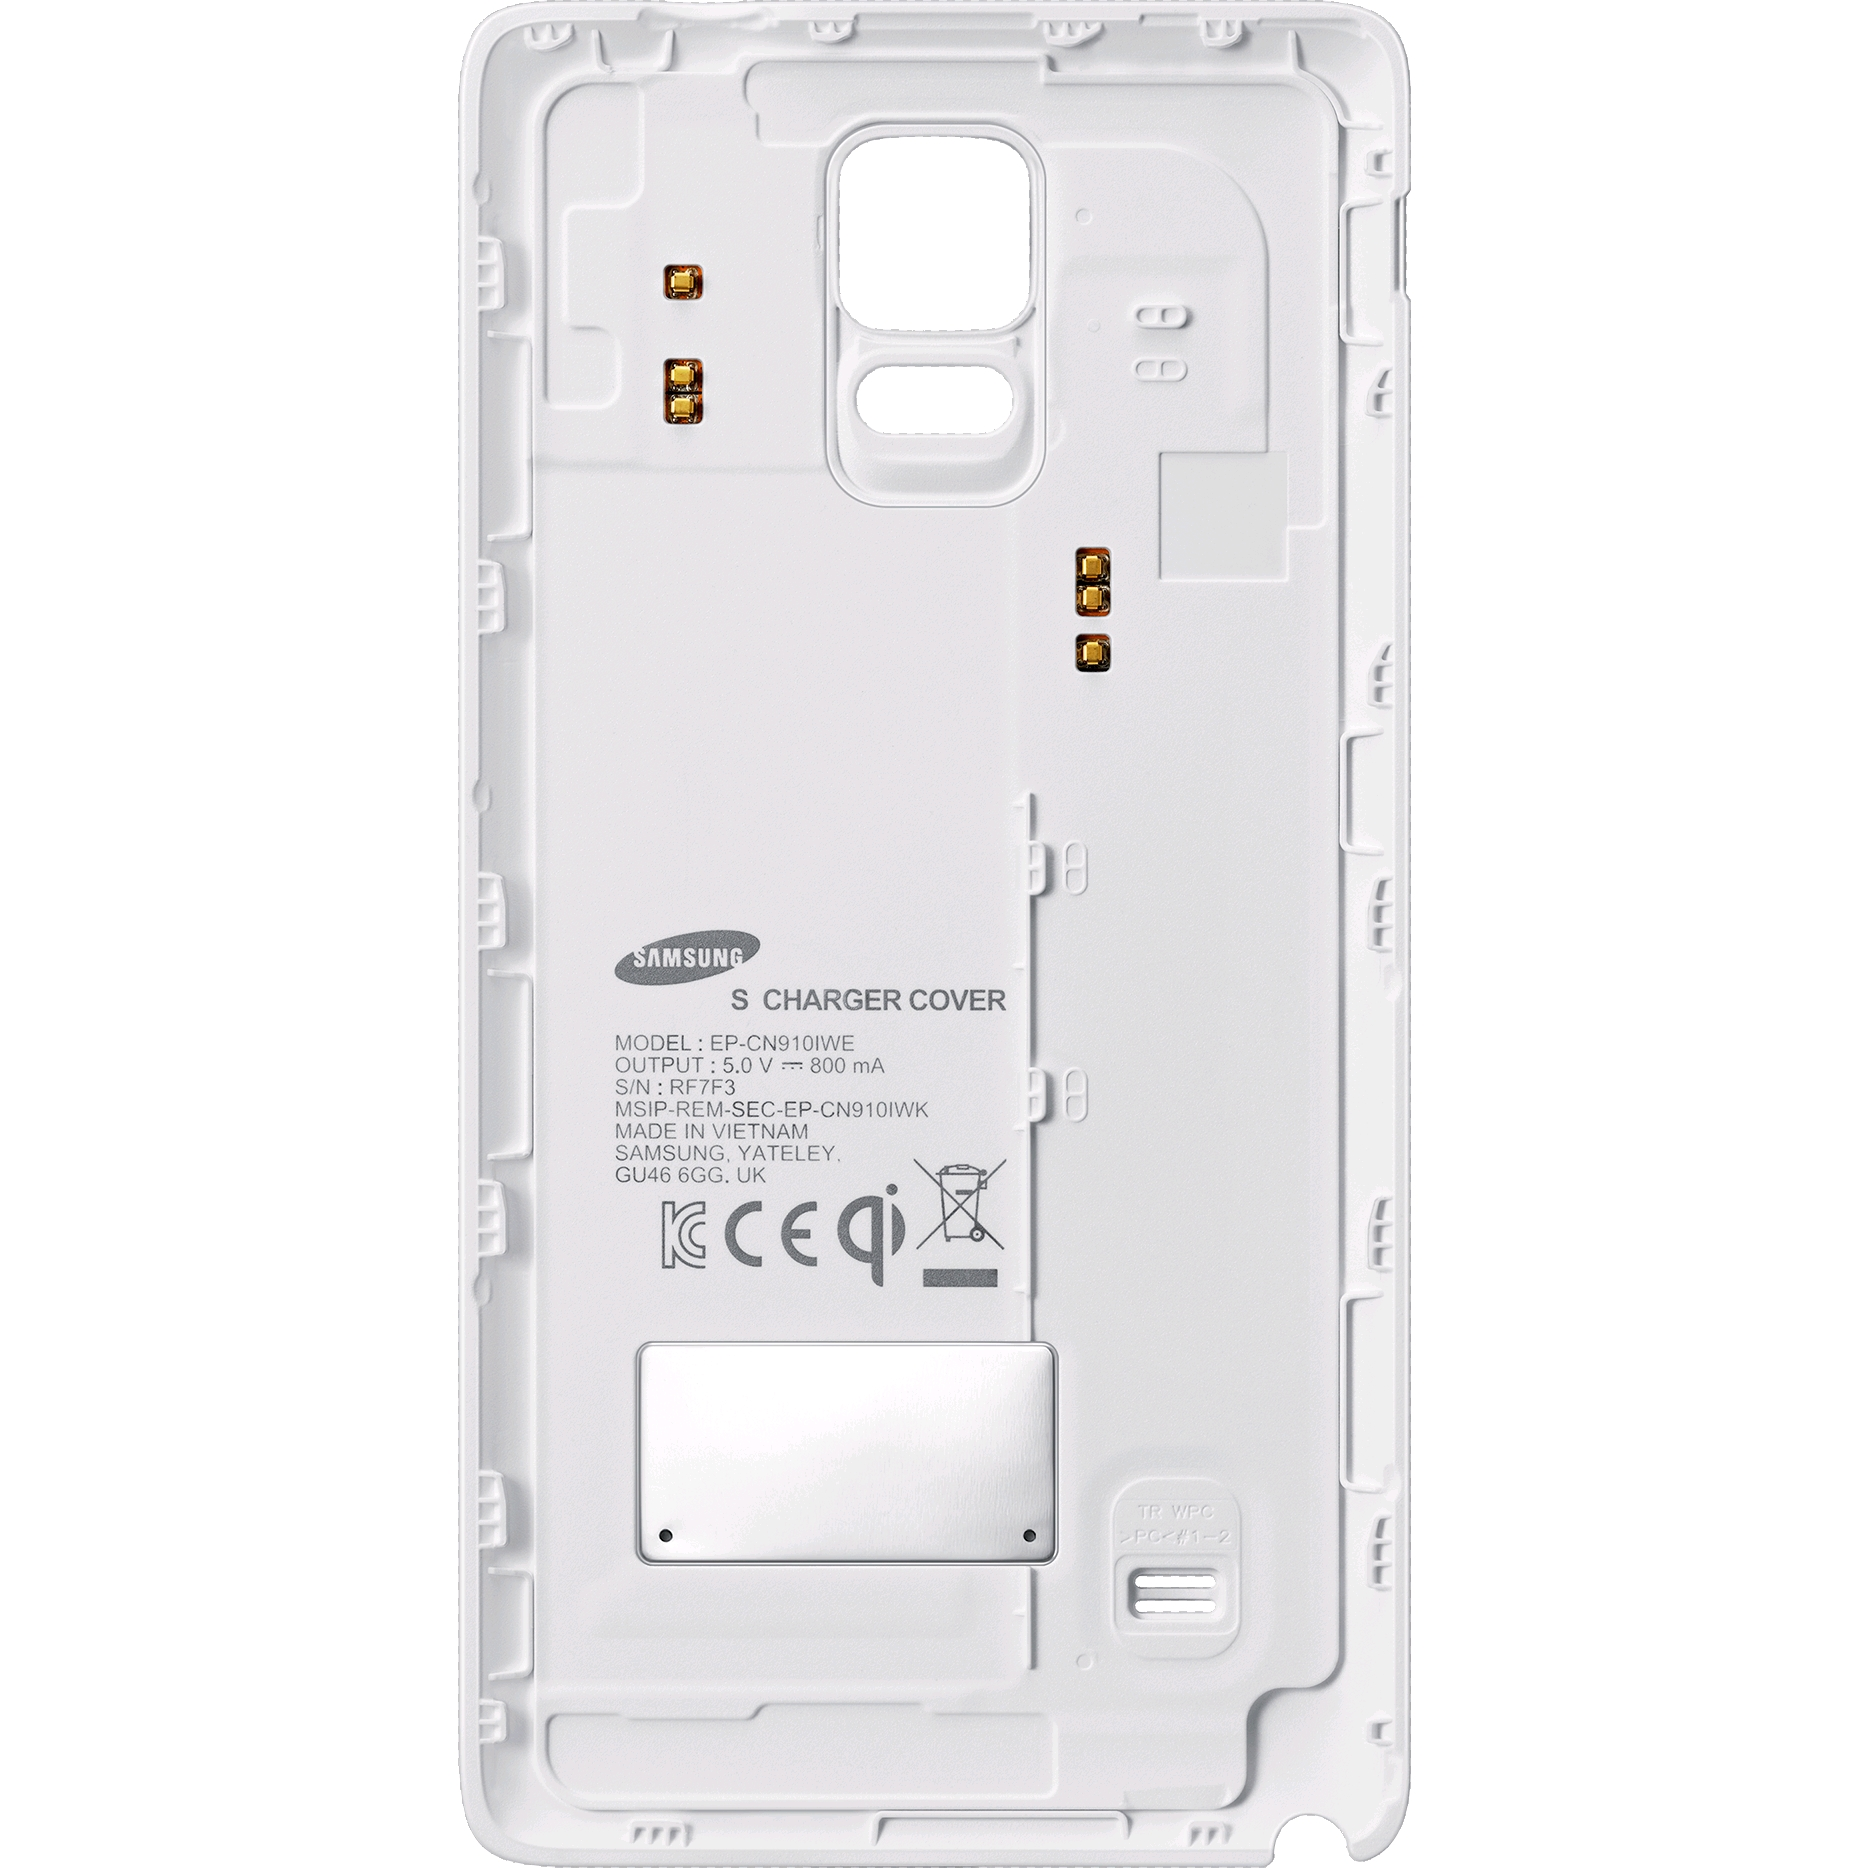 big sale 57069 77501 Samsung Wireless Charging Cover for Galaxy Note 4 White